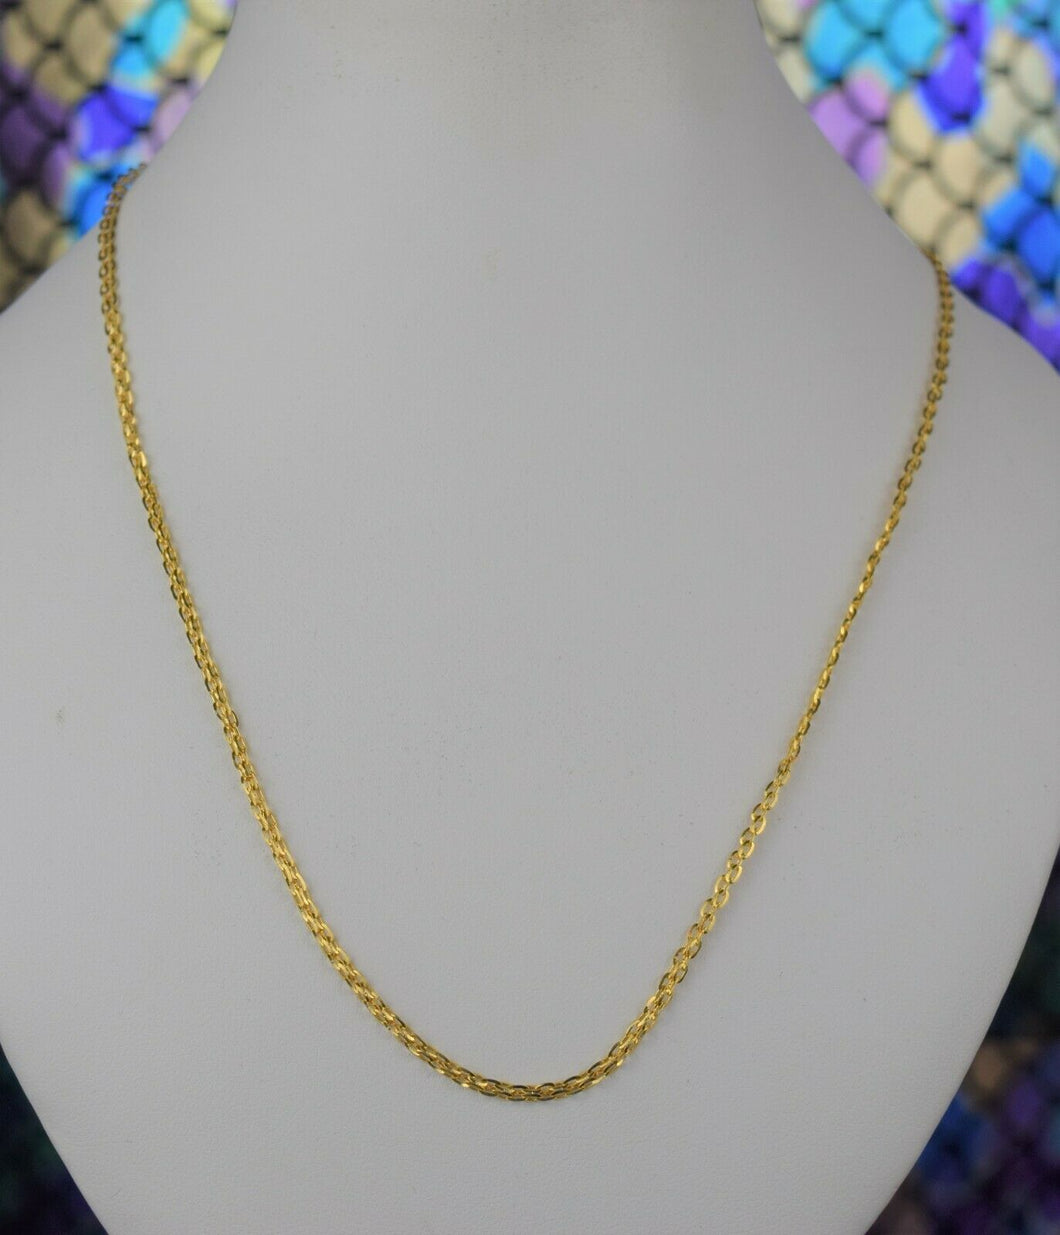 22k Chain Solid Gold Simple Elegant Cable Link Design C3375